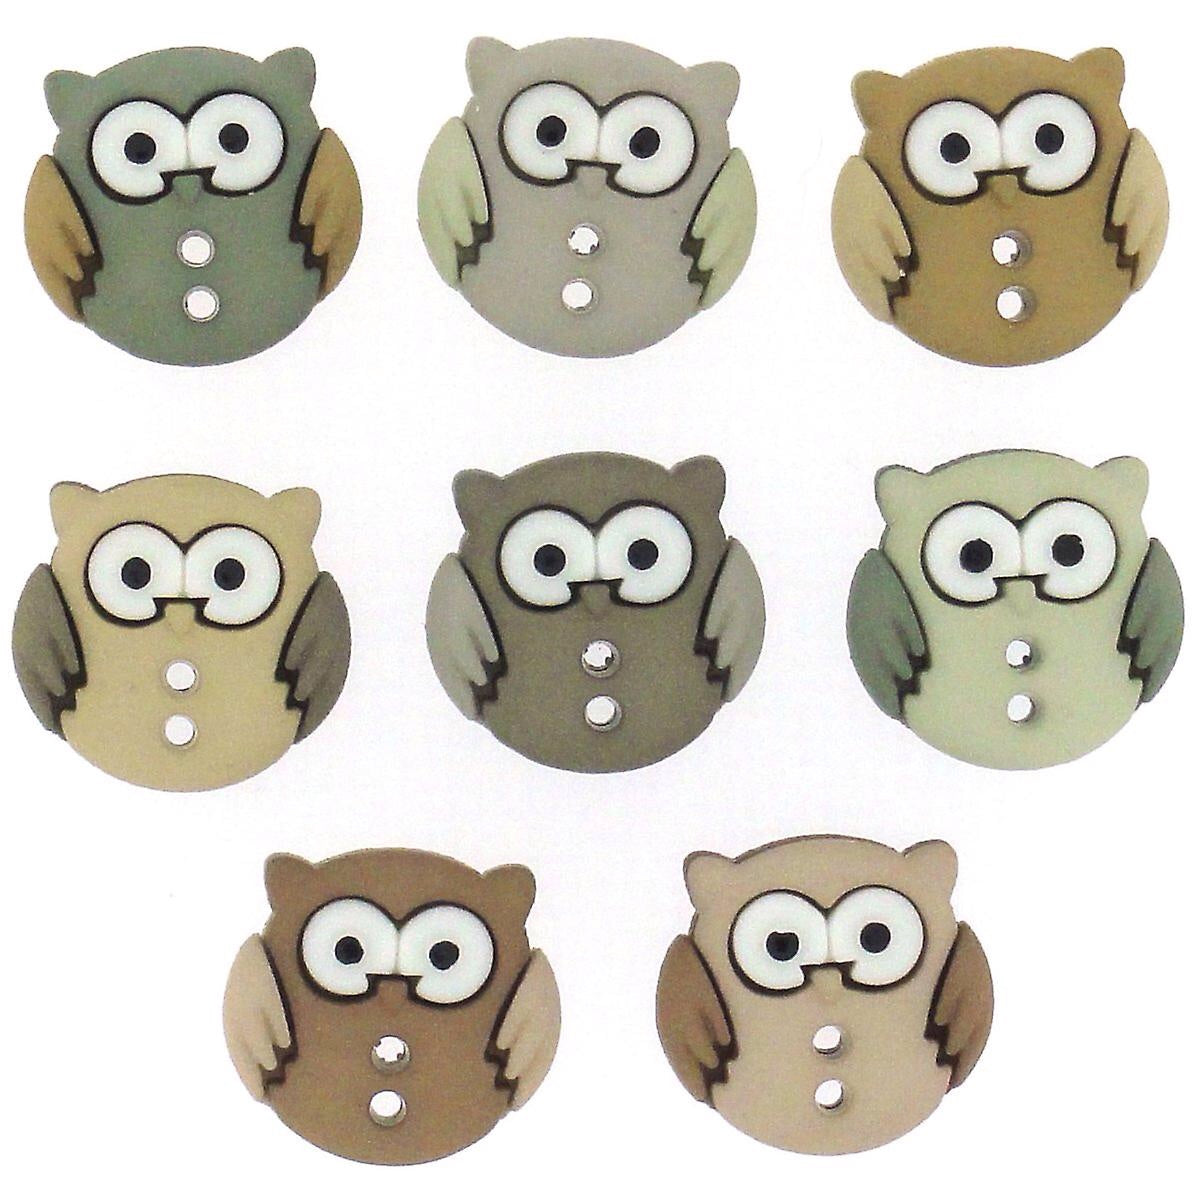 Sew Cute Owls - Dress It Up Buttons